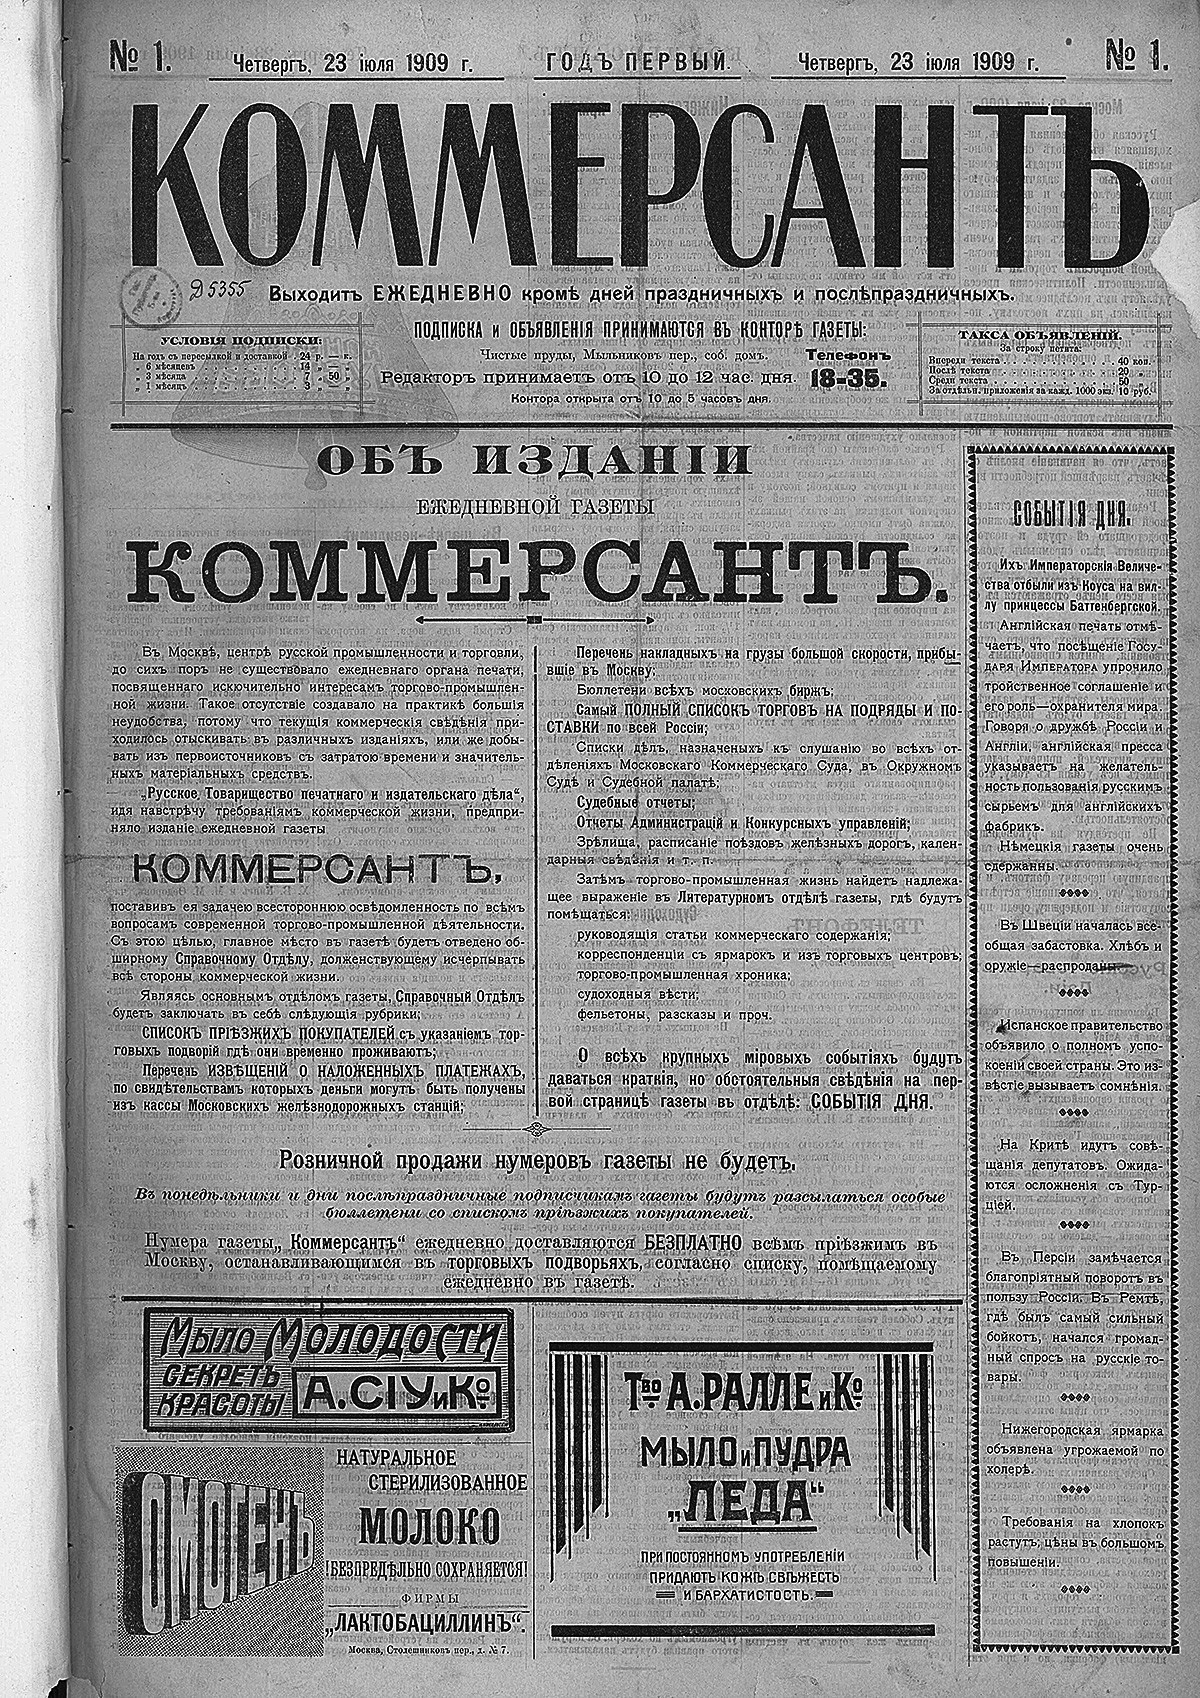 Pre-revolutionary Kommersant newspaper, 1909